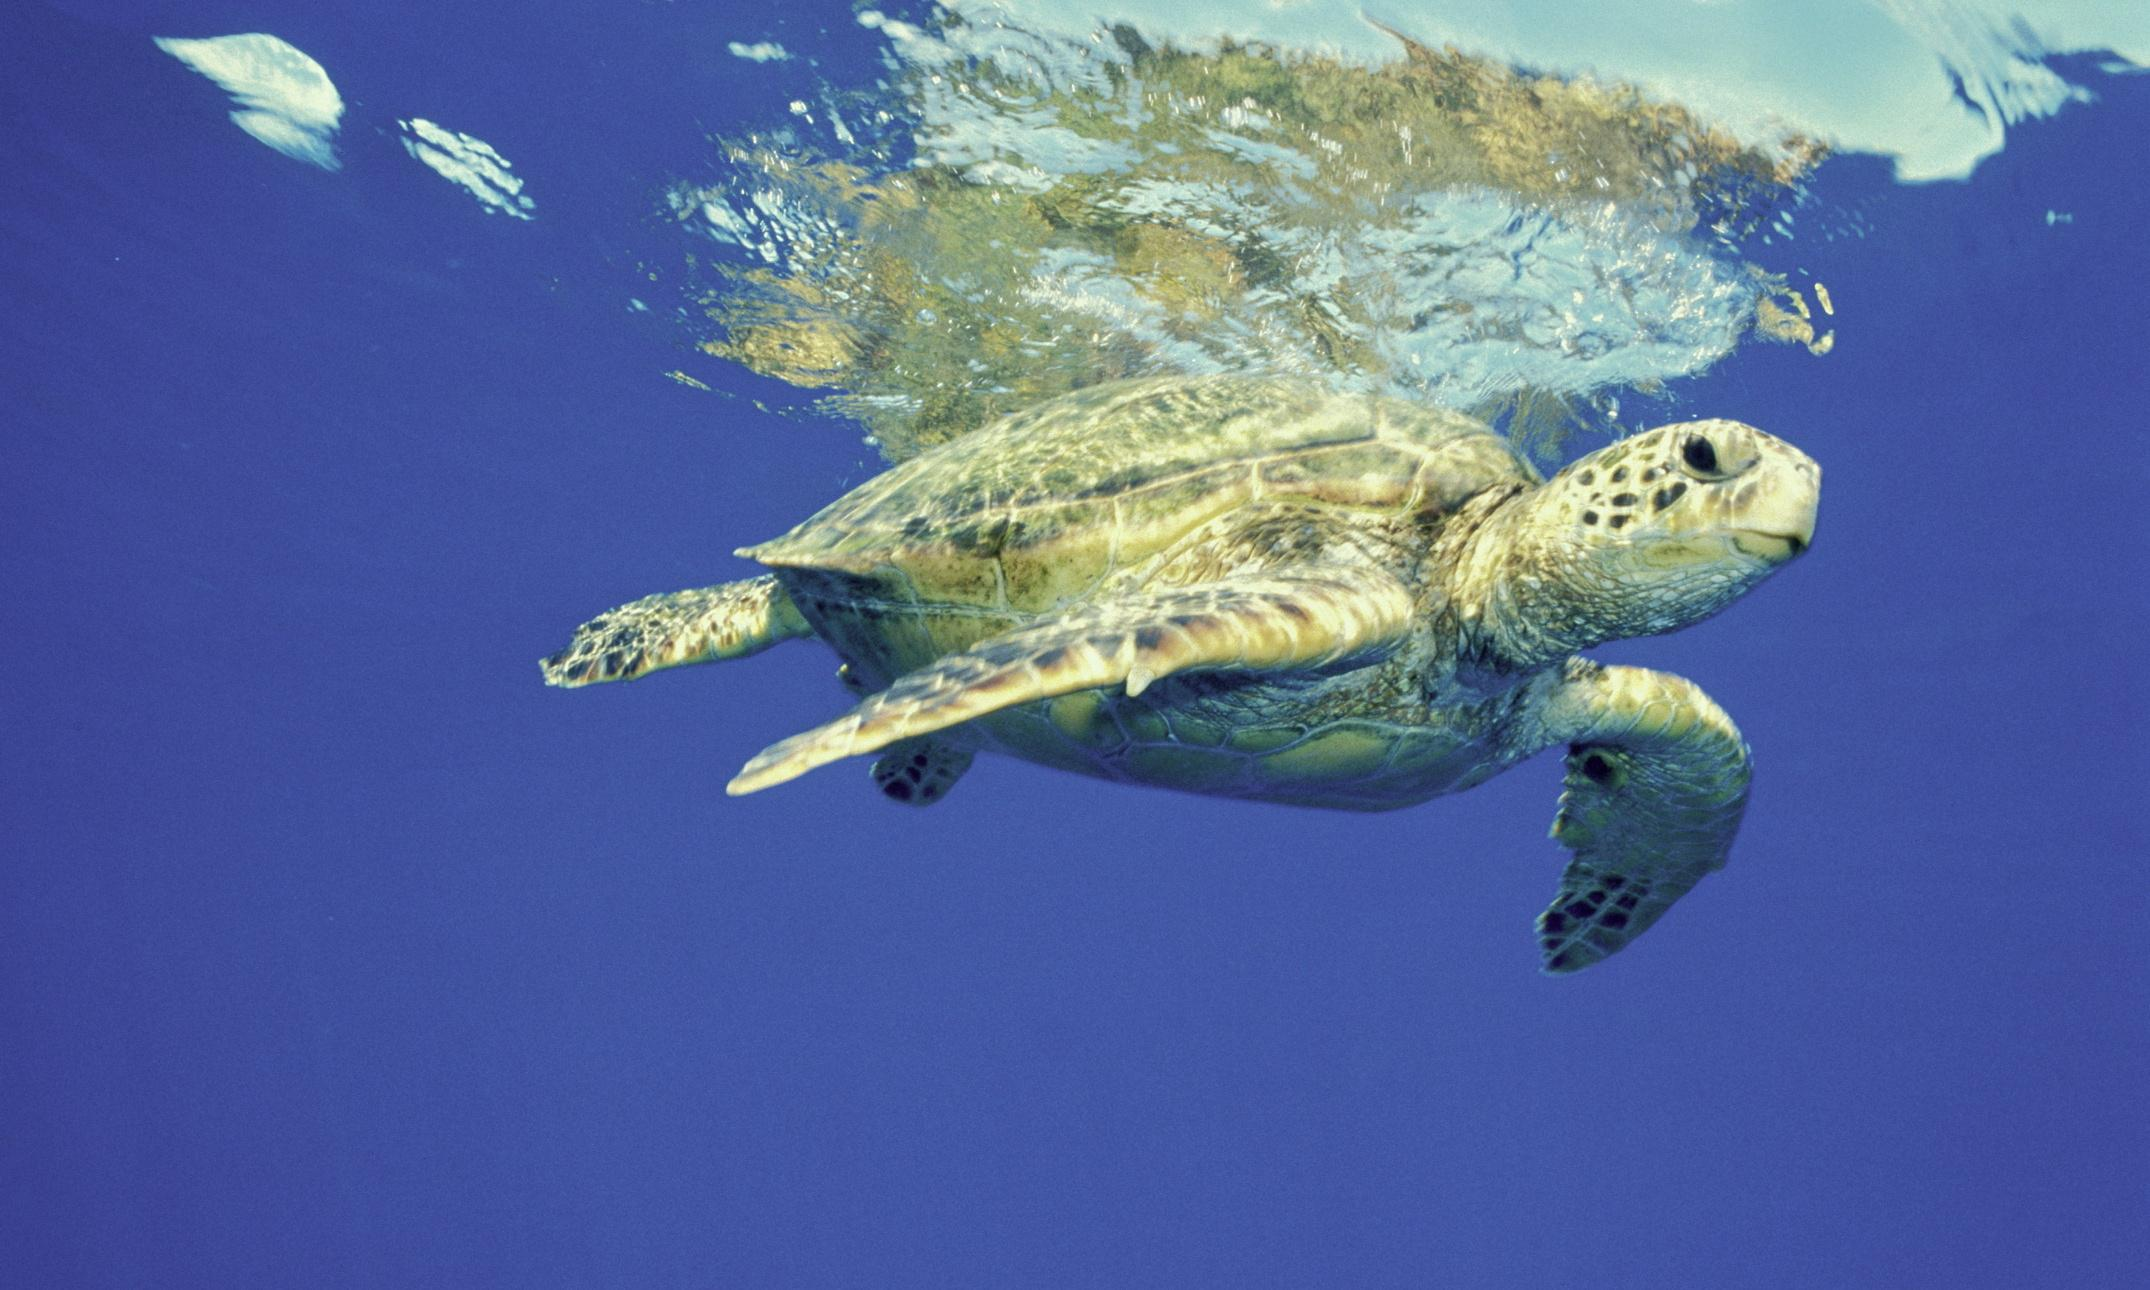 Study finds 'alarming' levels of chemicals in Great Barrier Reef turtles